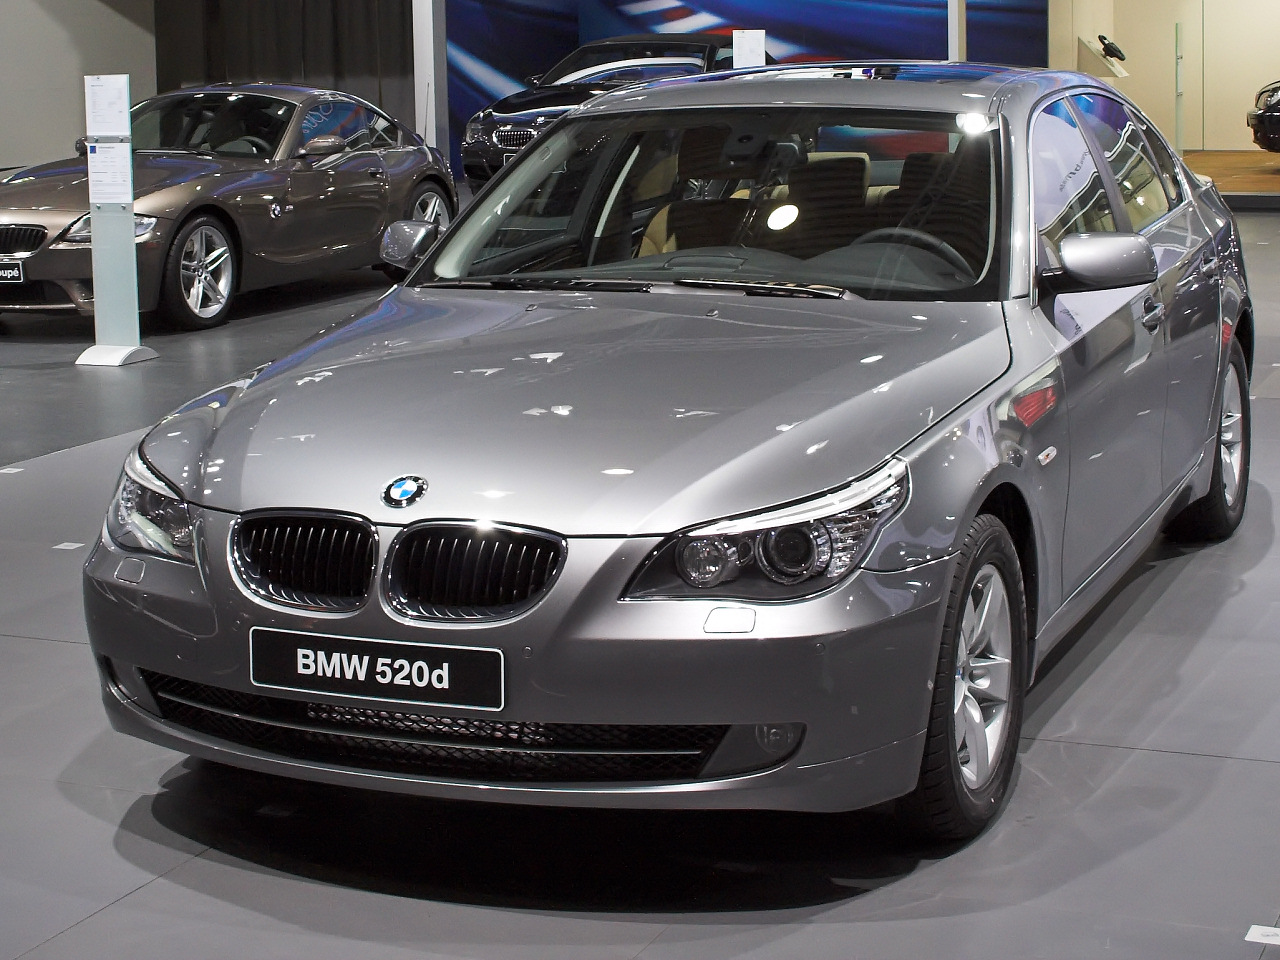 BMW 520D REVIEWS AND PRICES